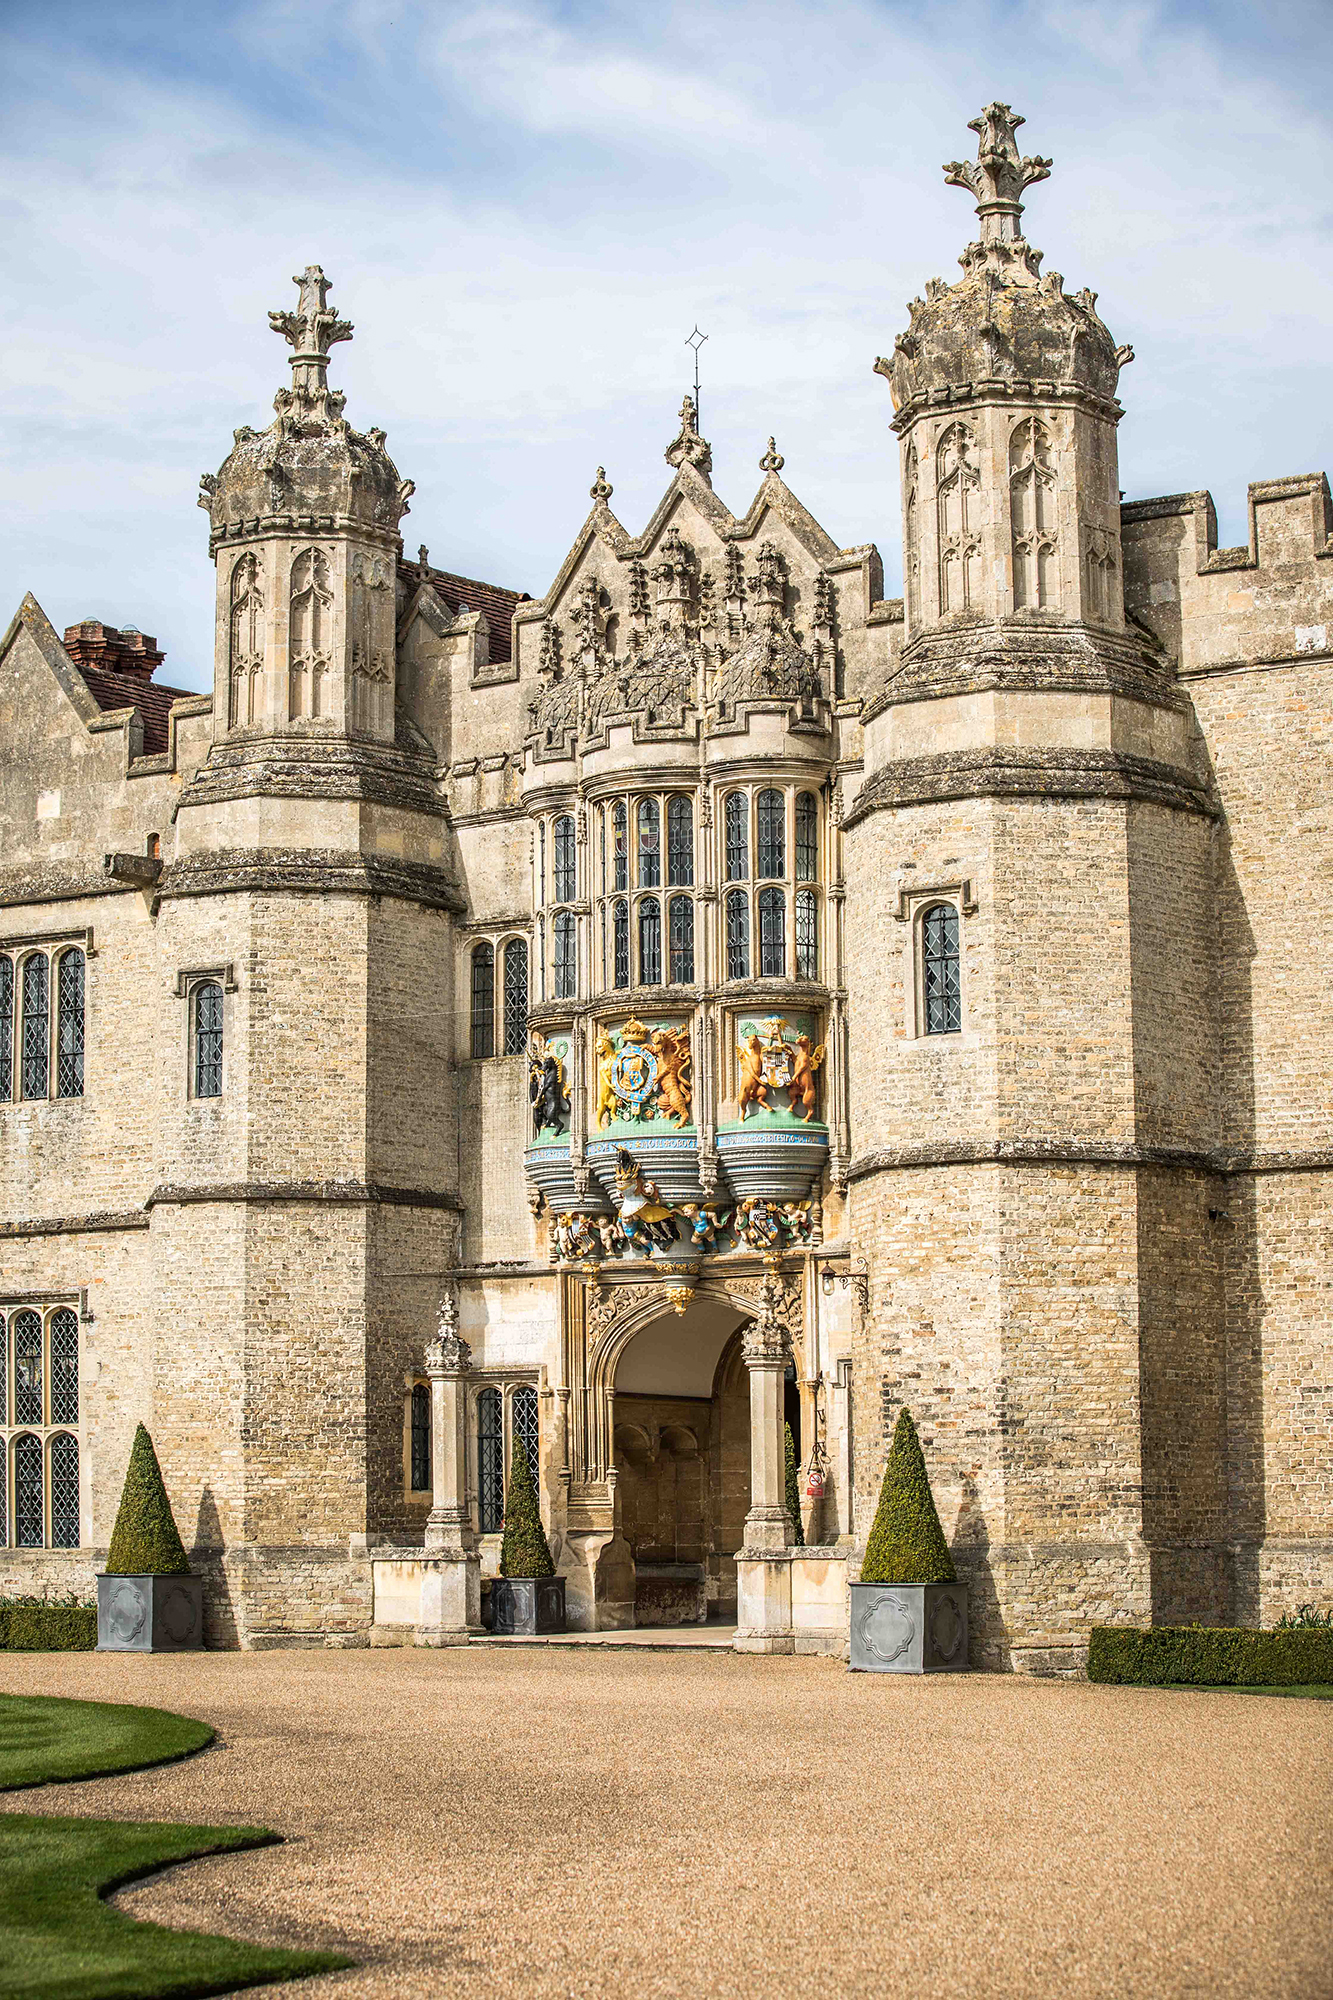 Main entrance to Hengrave hall Weddings and Events Venue